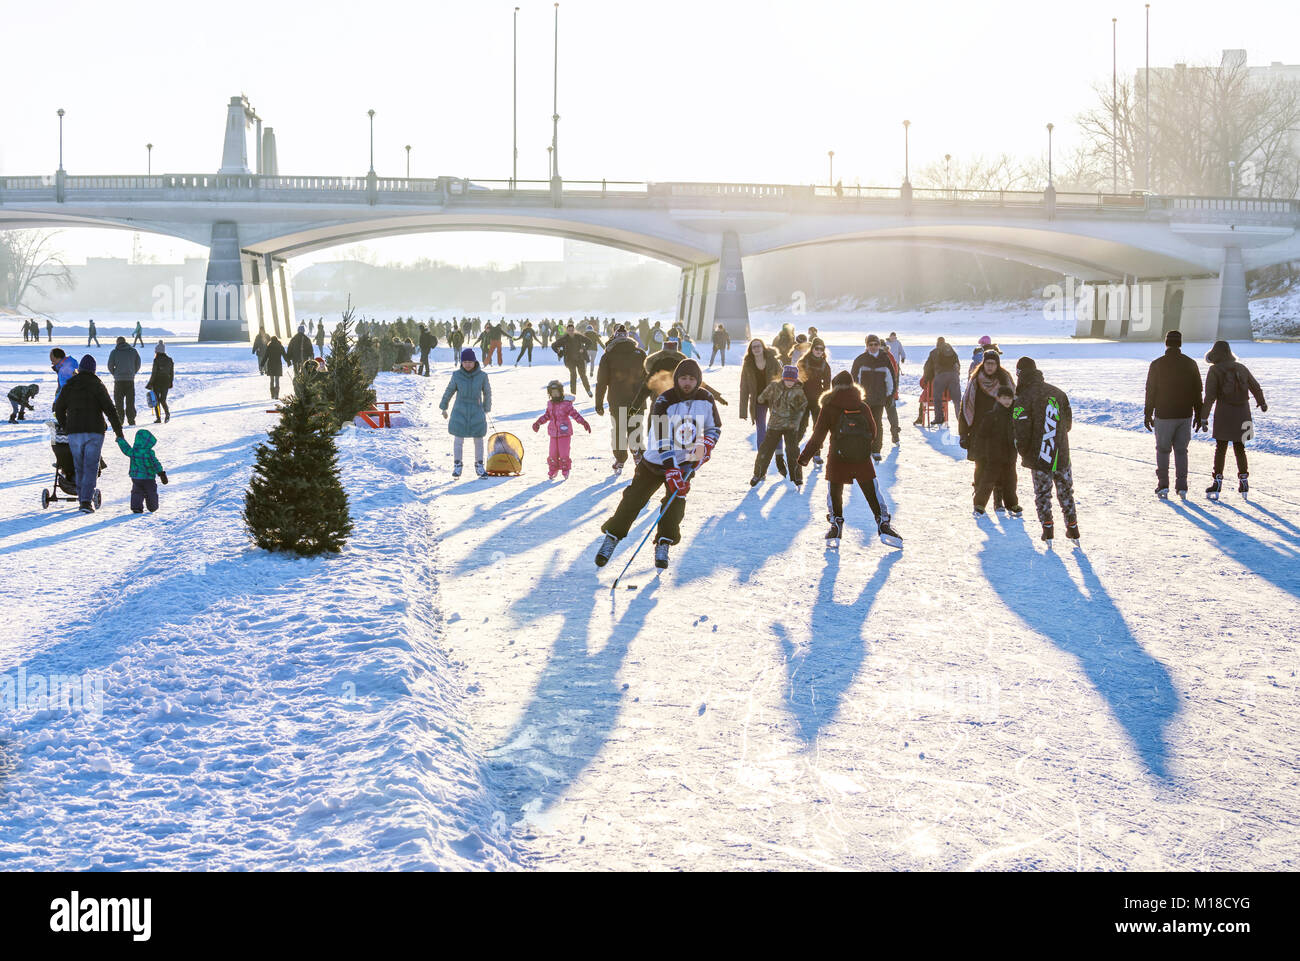 Ice skating on the Red River Mutual Trail, The Forks, Winnipeg, Manitoba, Canada. - Stock Image